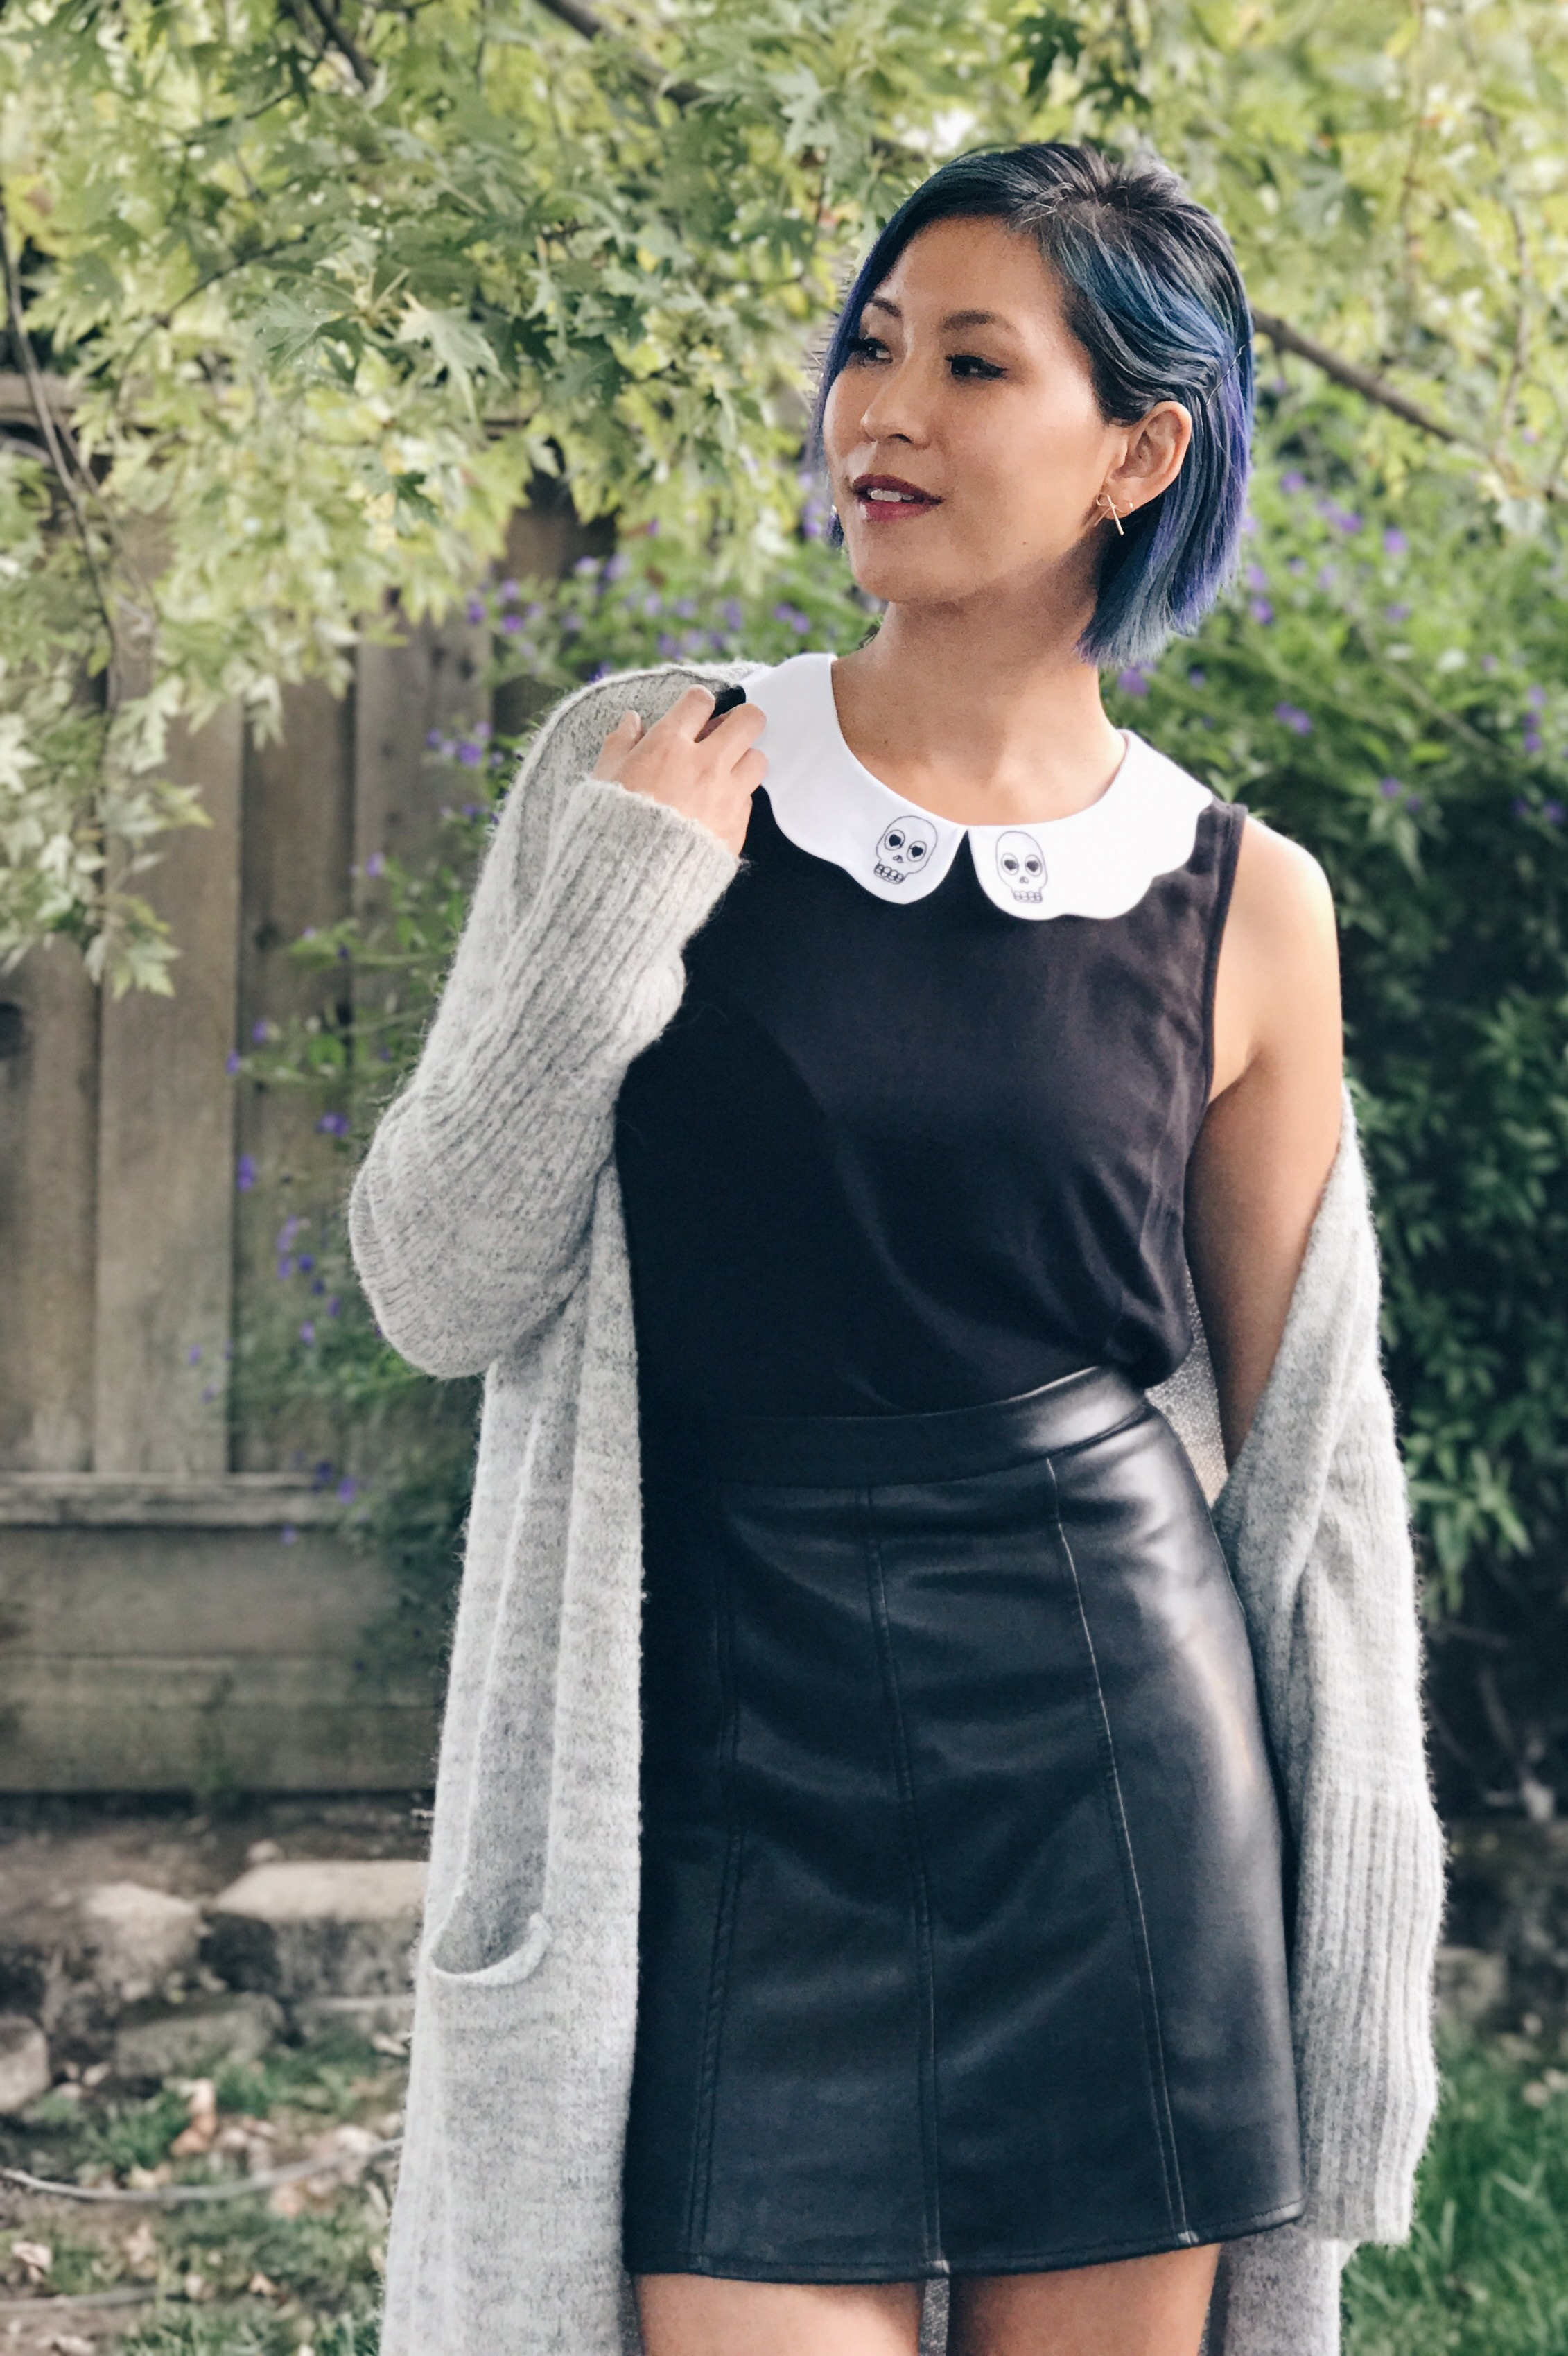 Cute Skull Collar Top Ghoulish October Outfit